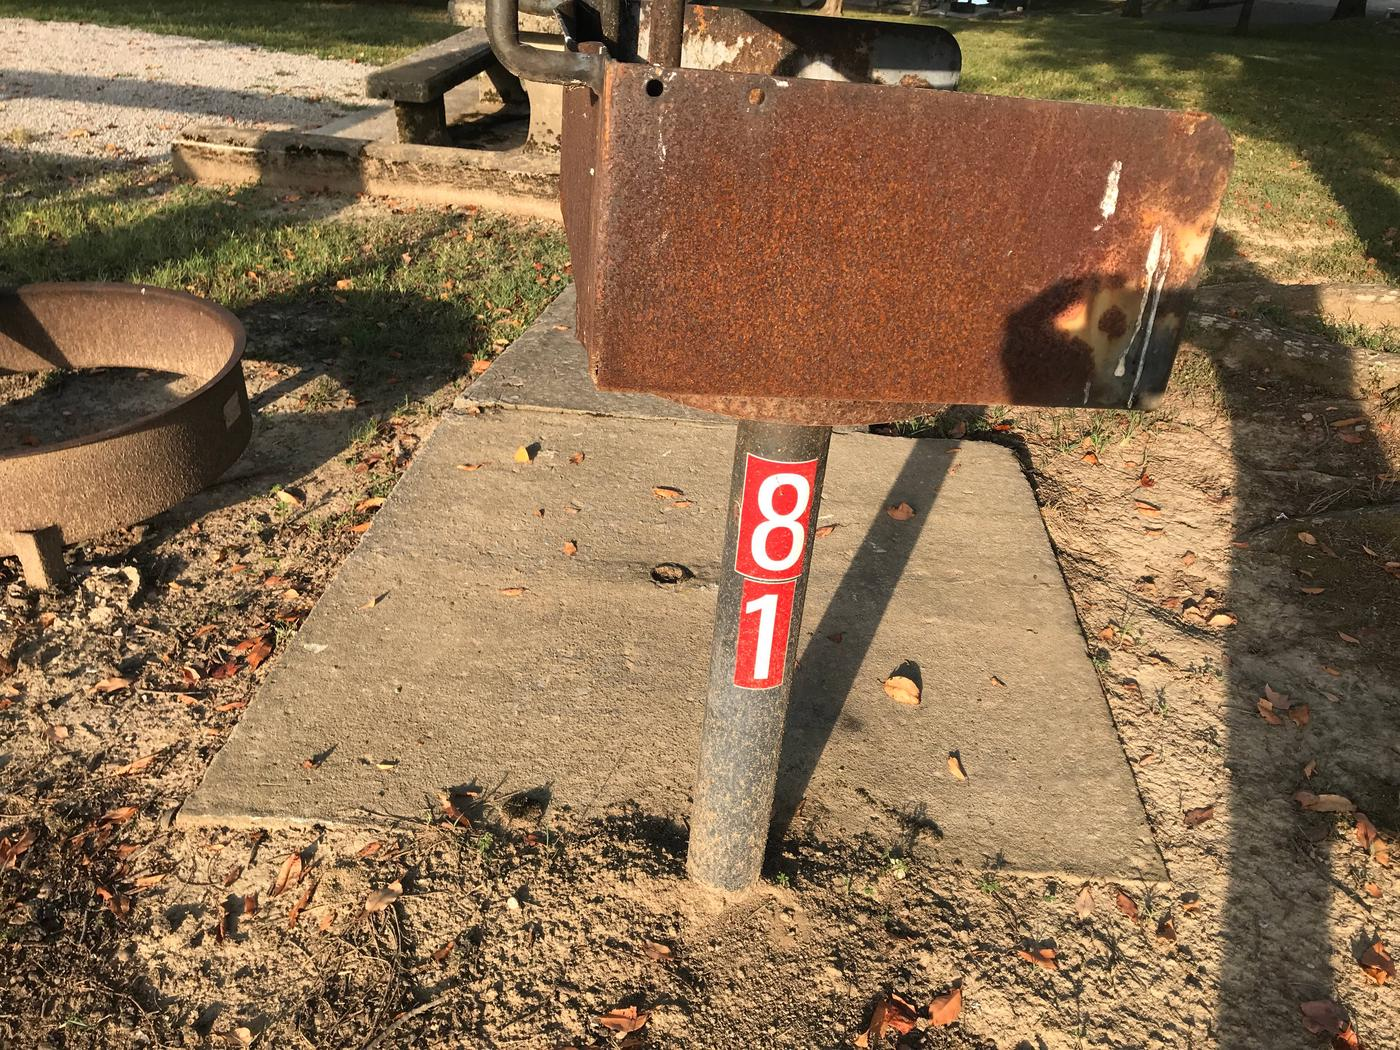 WILLOW GROVE CAMPGROUND SITE #81 PEDESTAL GRILL WITH SITE NUMBER (2)WILLOW GROVE CAMPGROUND SITE #81